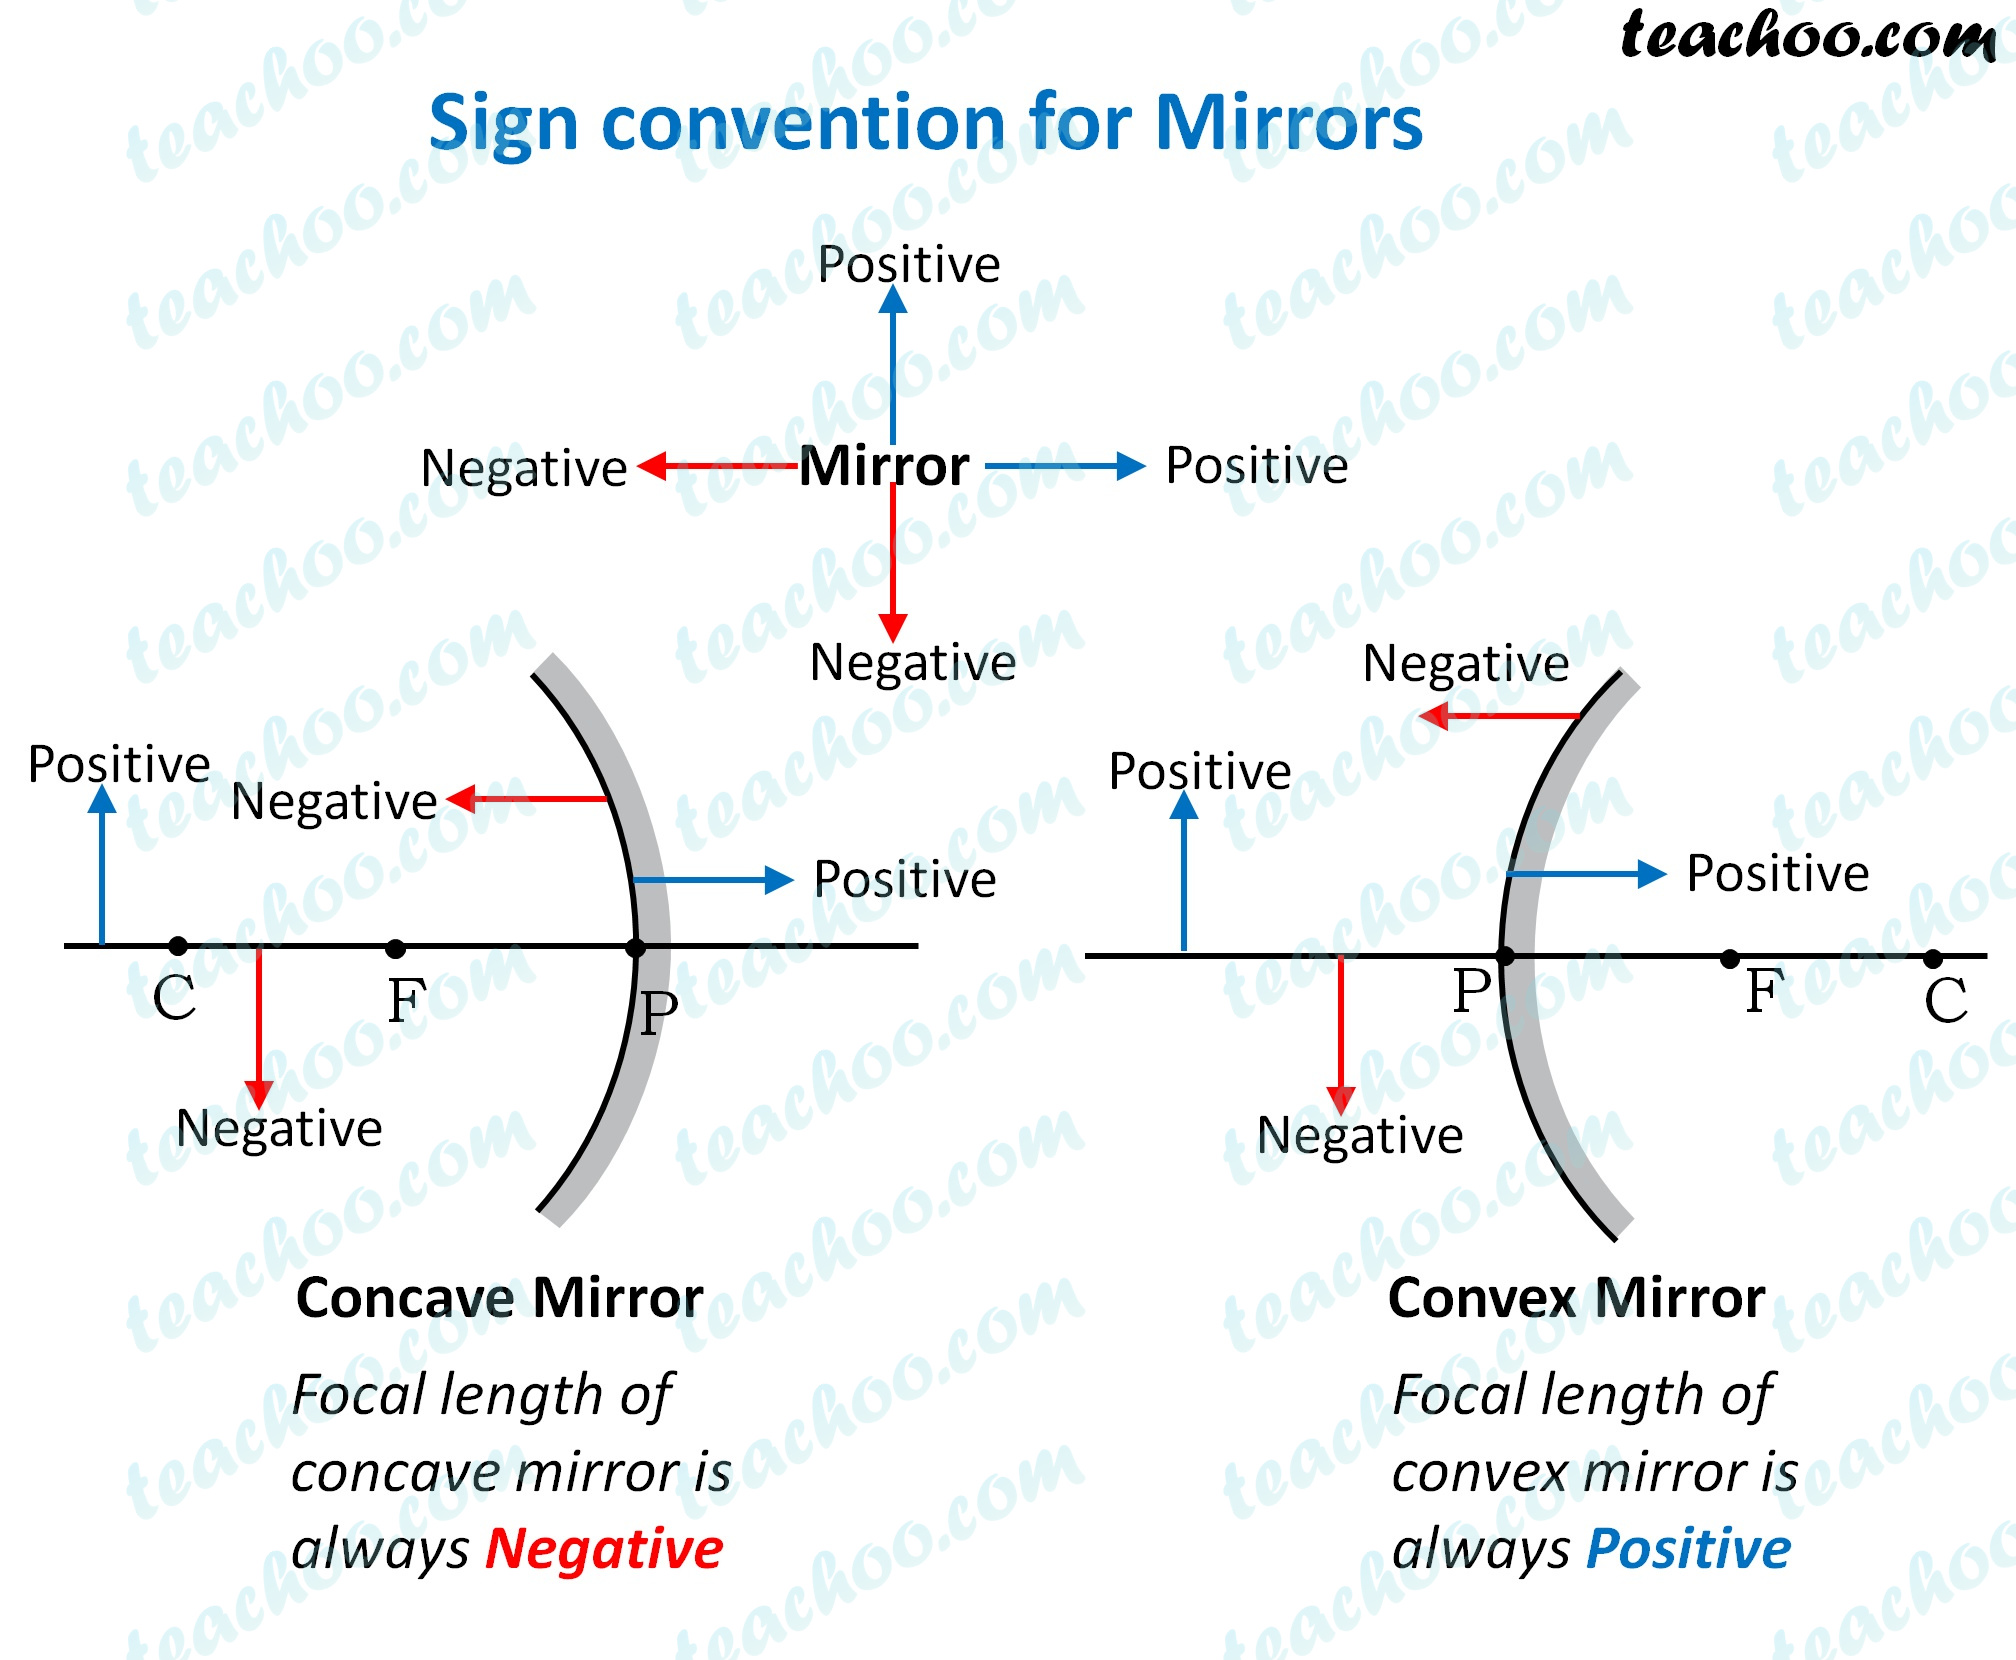 sign-convention-for-mirrors---teachoo.jpg